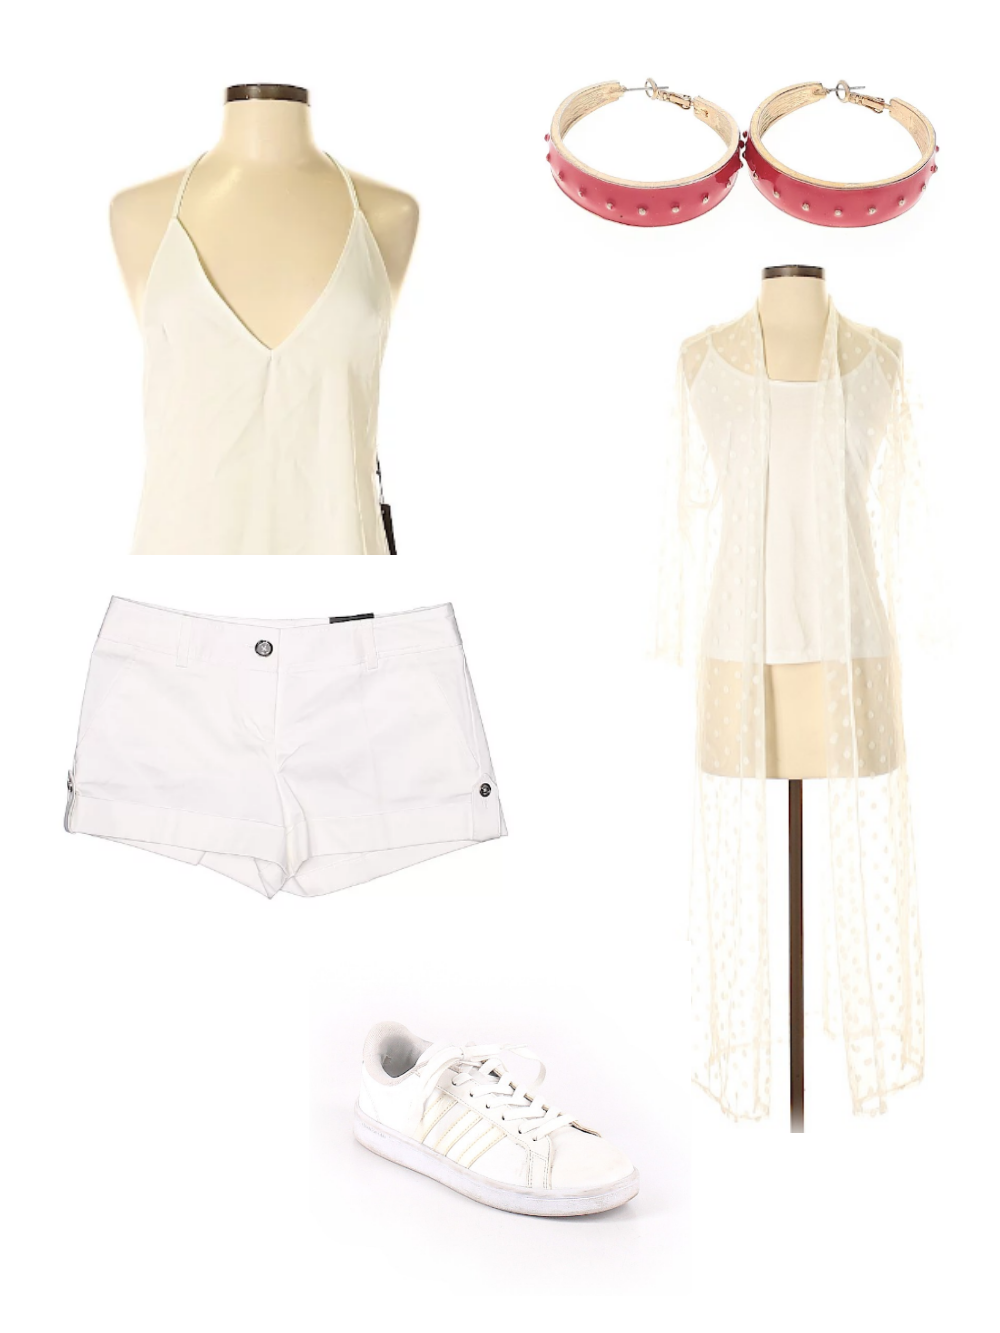 White shirt, shorts, sneakers, red earrings, and white kimono outfit for fourth of july